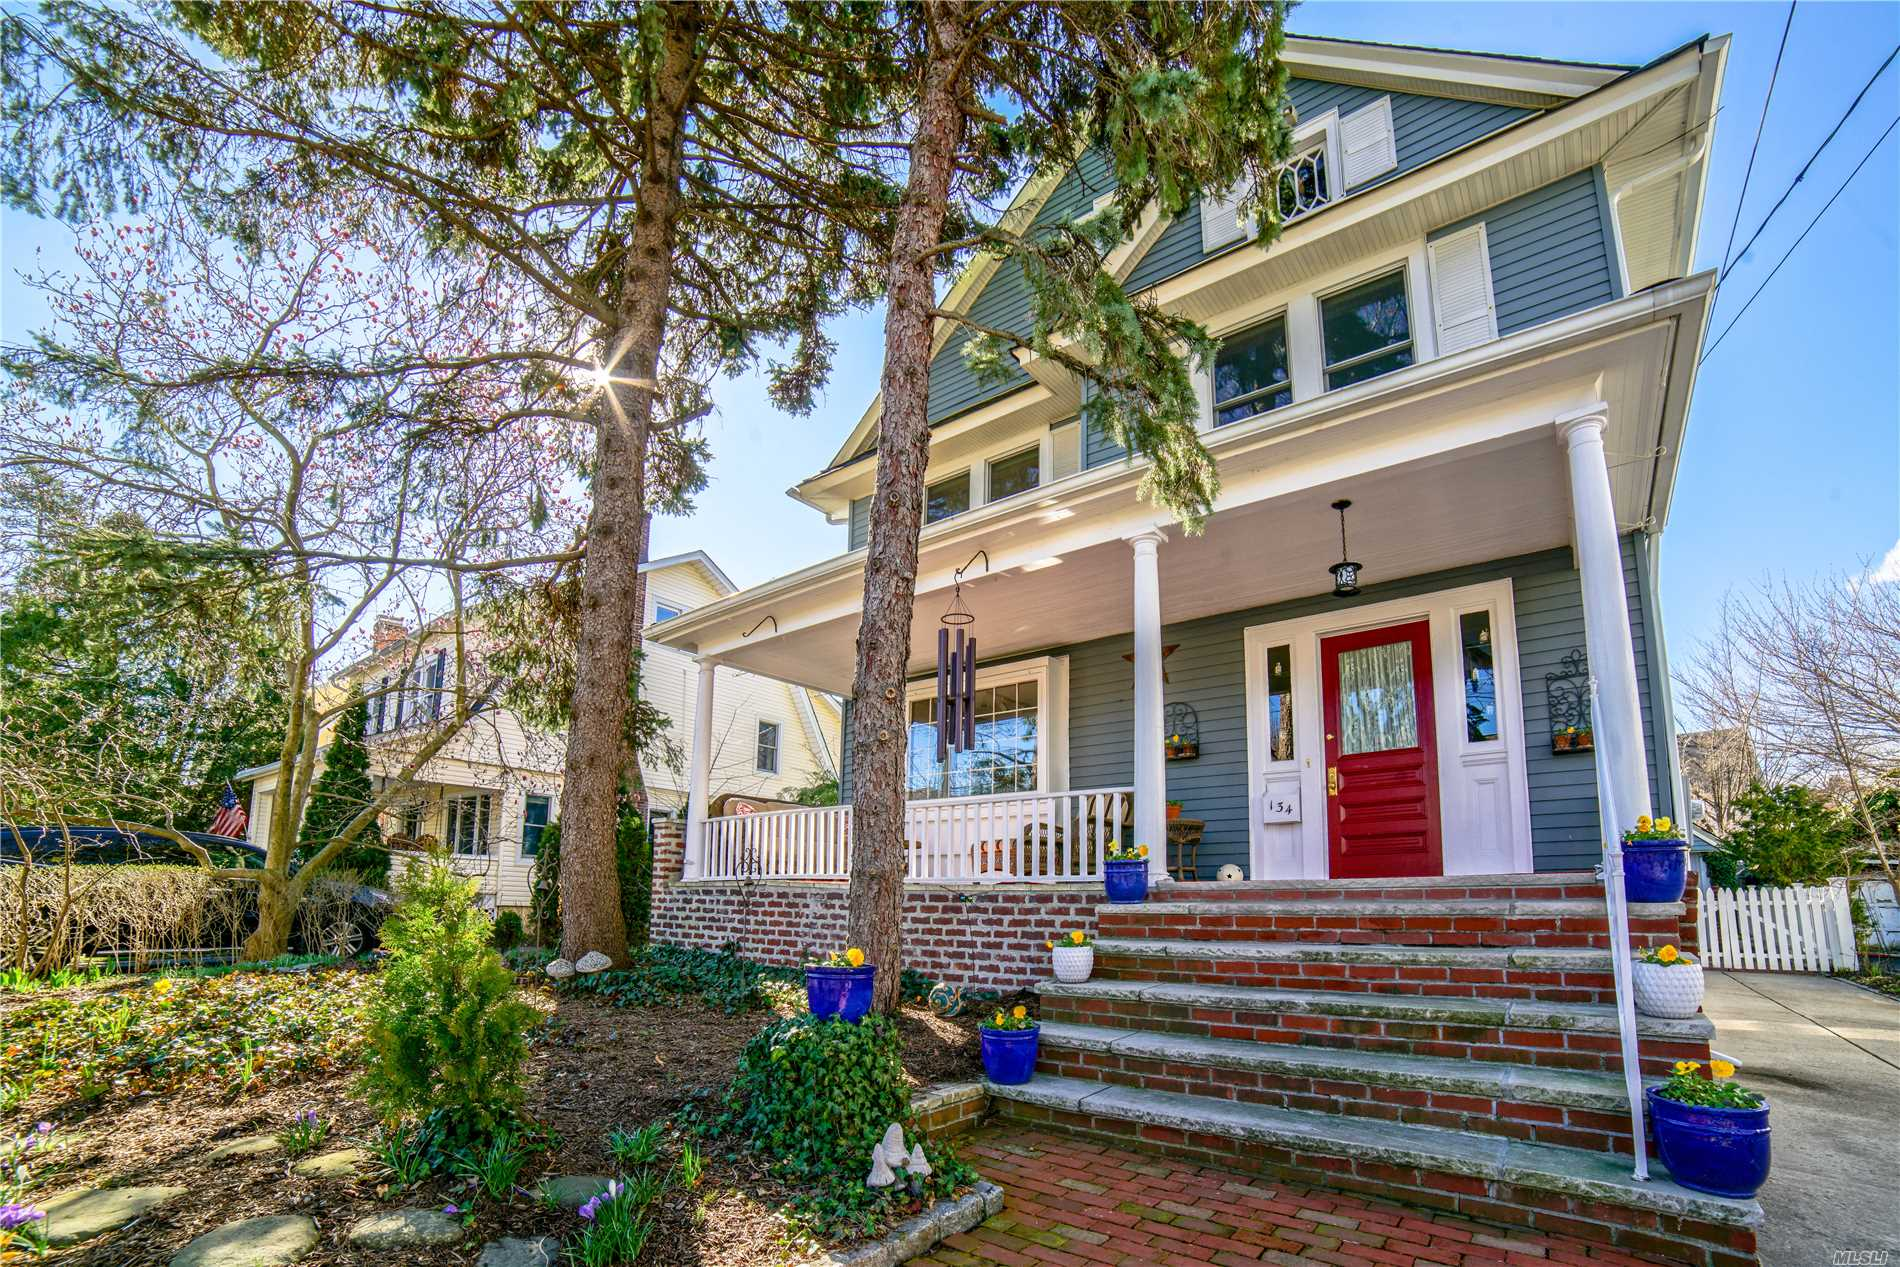 An ideal location & great curb appeal make this Queen Anne style home very desirable. There is nothing like sitting on your own front porch w/family, friends &neighbors.Updated eat in country kitchen, large lr w/fp & dr open to a rear deck & beautiful garden space. Many windows have been replaced, powder room is located on this 1st flr.Second story has 4 brs & updated bth. 3rd story walk up attic is a large, bright area w/4 skylights & a wonderful, bright bonus area.Basement has new windows/laundry